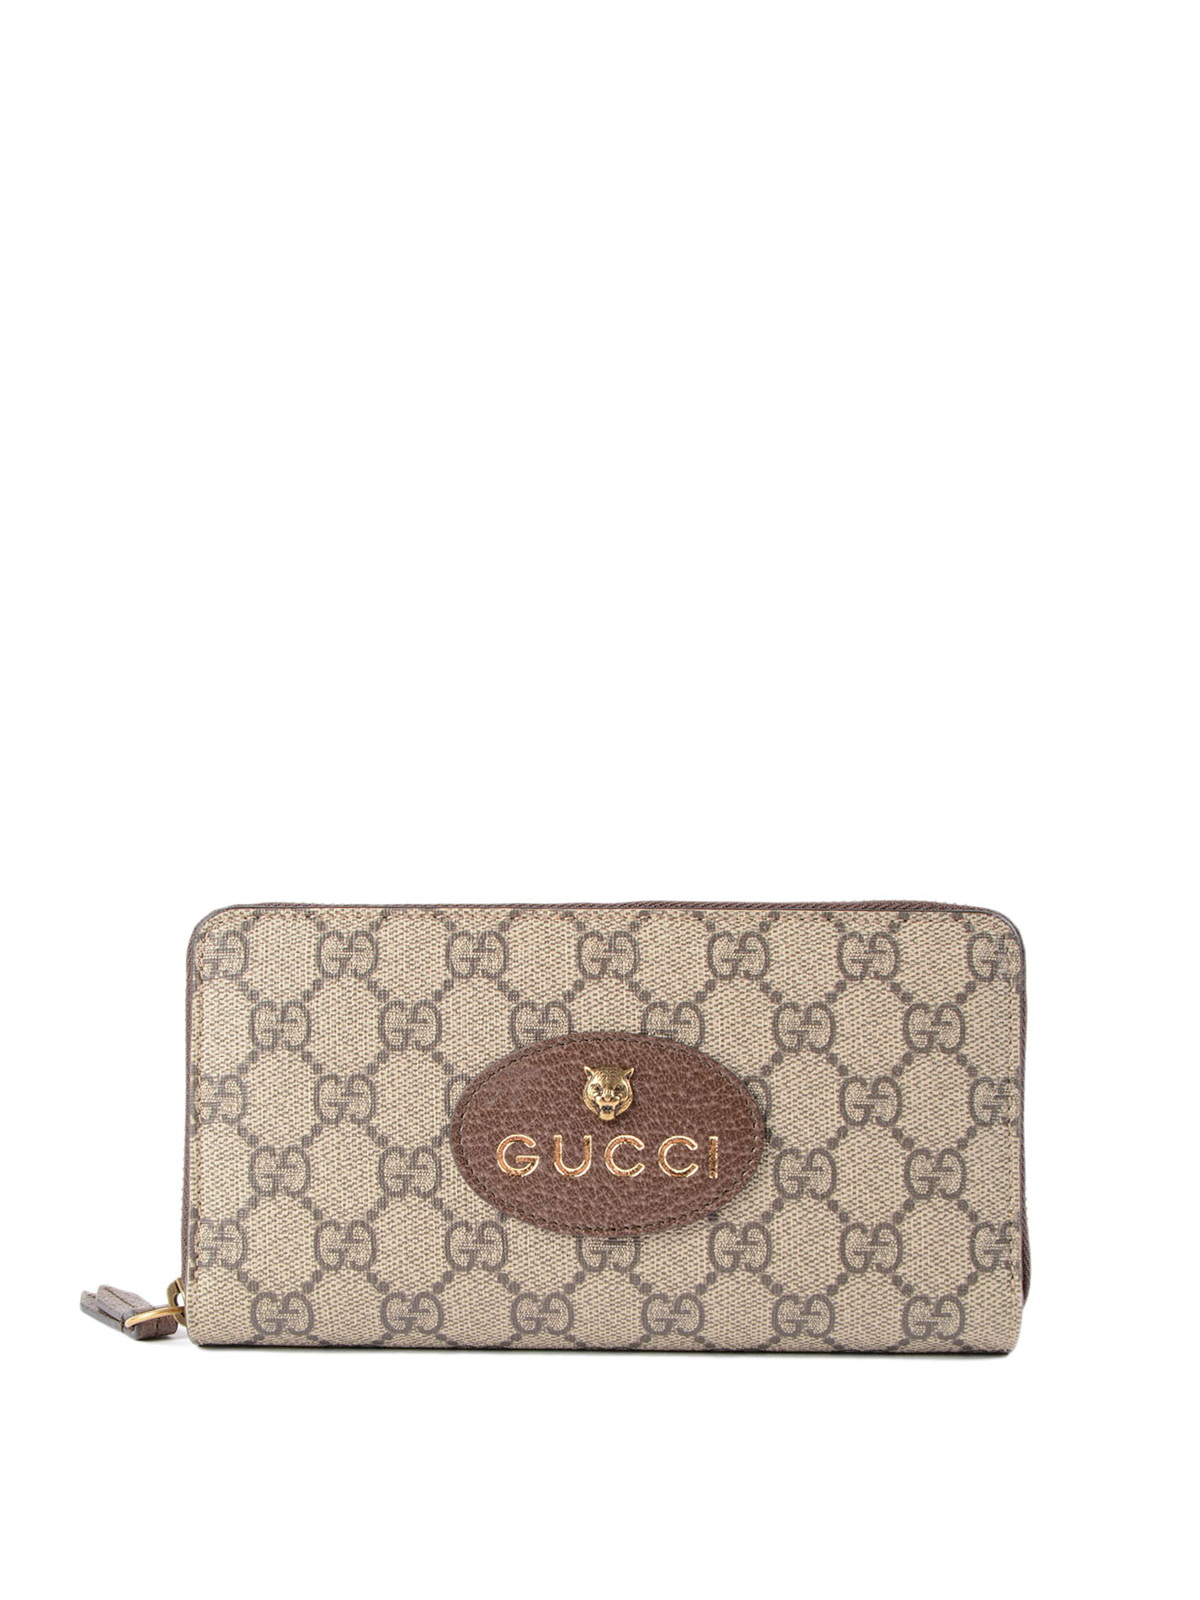 94c652520bf523 Gucci Gg Supreme Round Zip Wallet 506279 | Stanford Center for ...